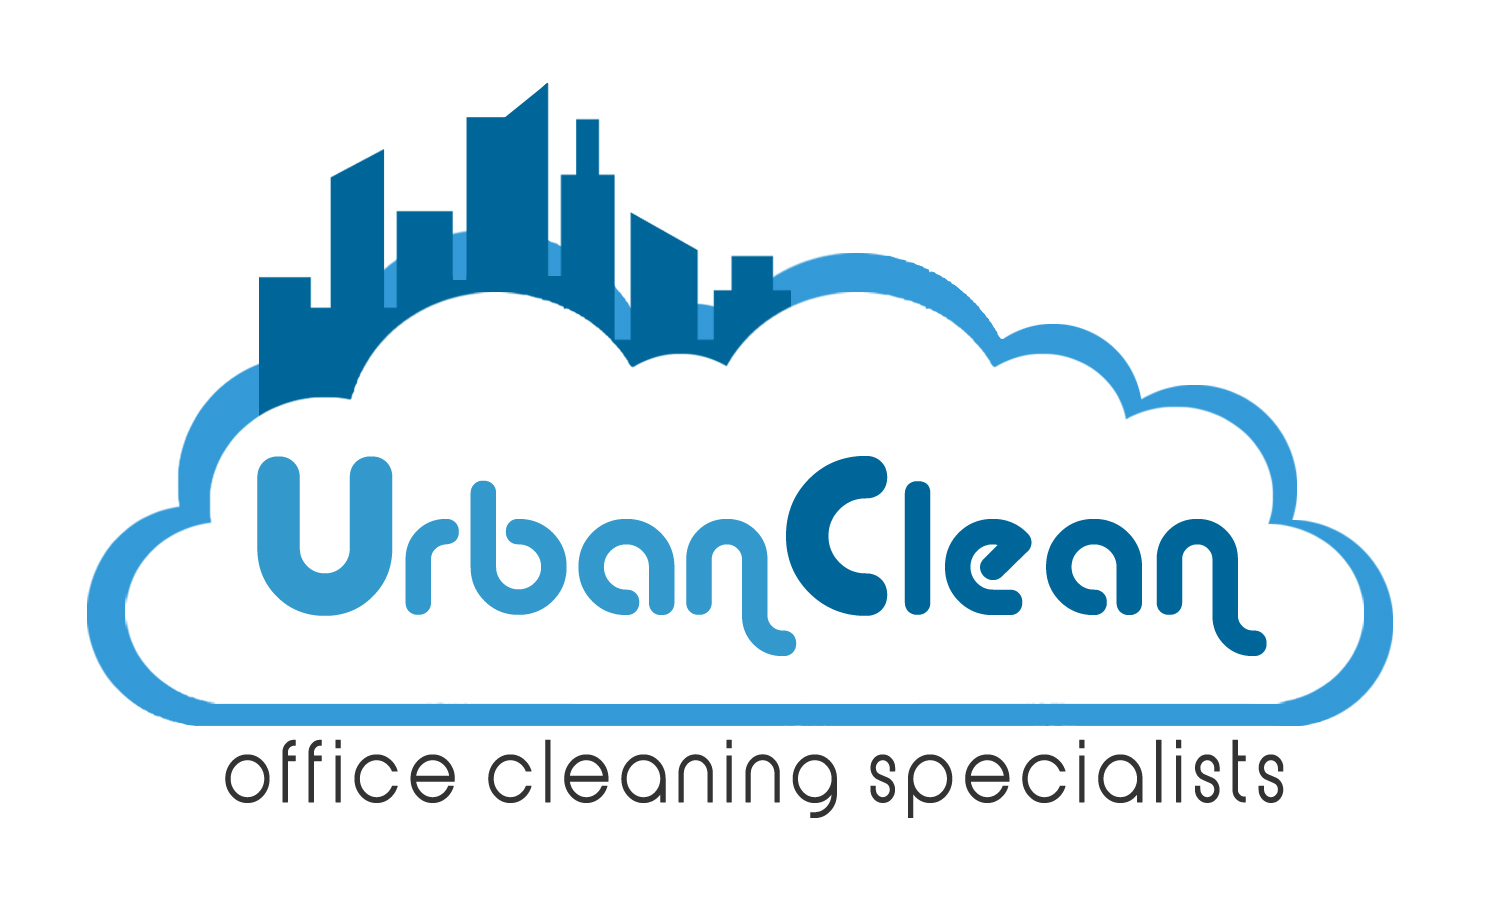 Urban Clean Franchise opportunities